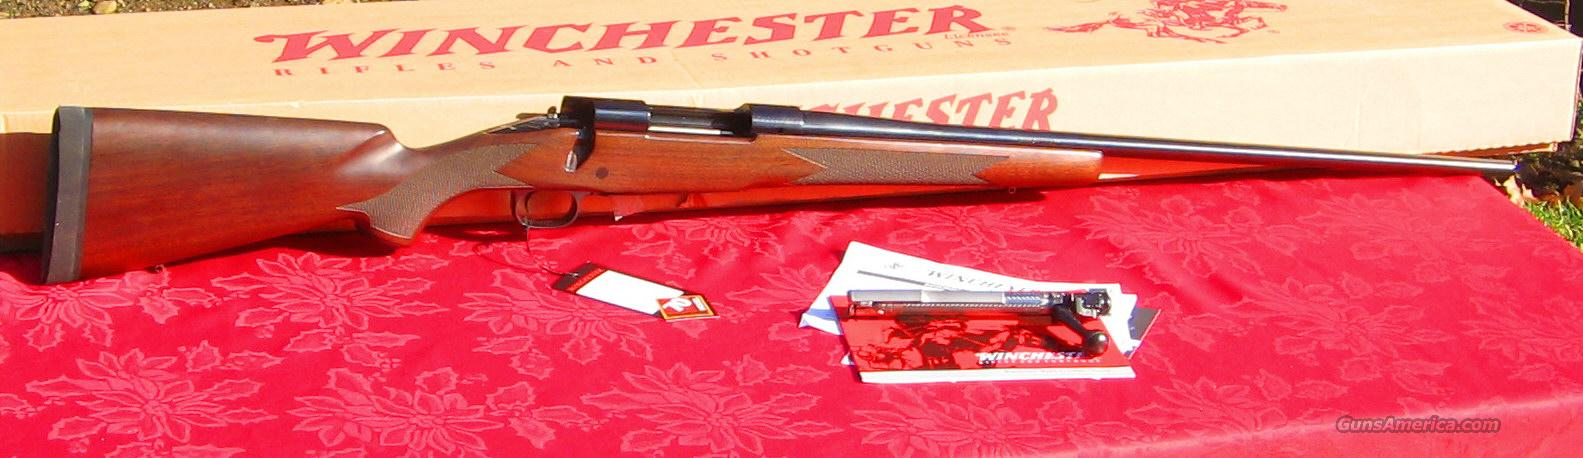 NEW! WINCHESTER M70 300 WIN CLASSIC CONTROL FEED WALNUT  Guns > Rifles > Winchester Rifles - Modern Bolt/Auto/Single > Model 70 > Post-64